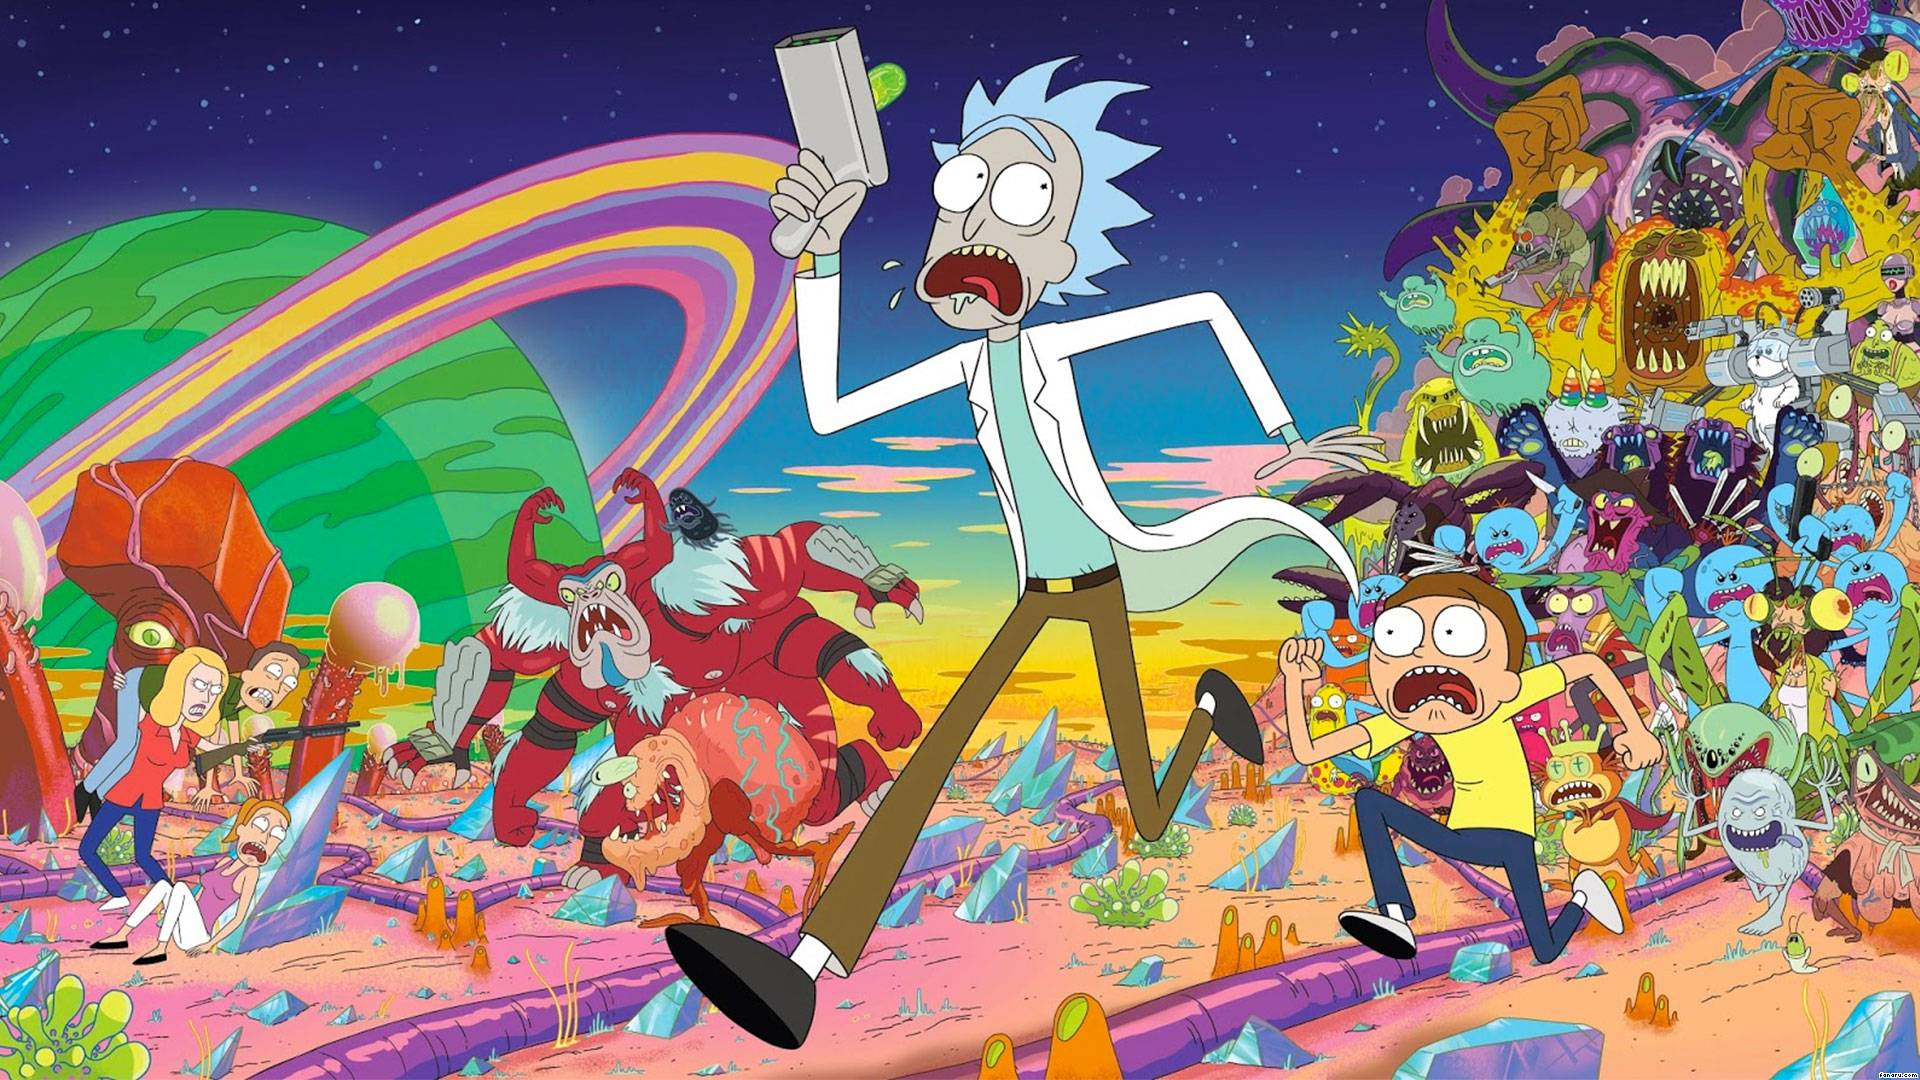 Rick and Morty HD Wallpaper | 1920x1080 | ID:56257